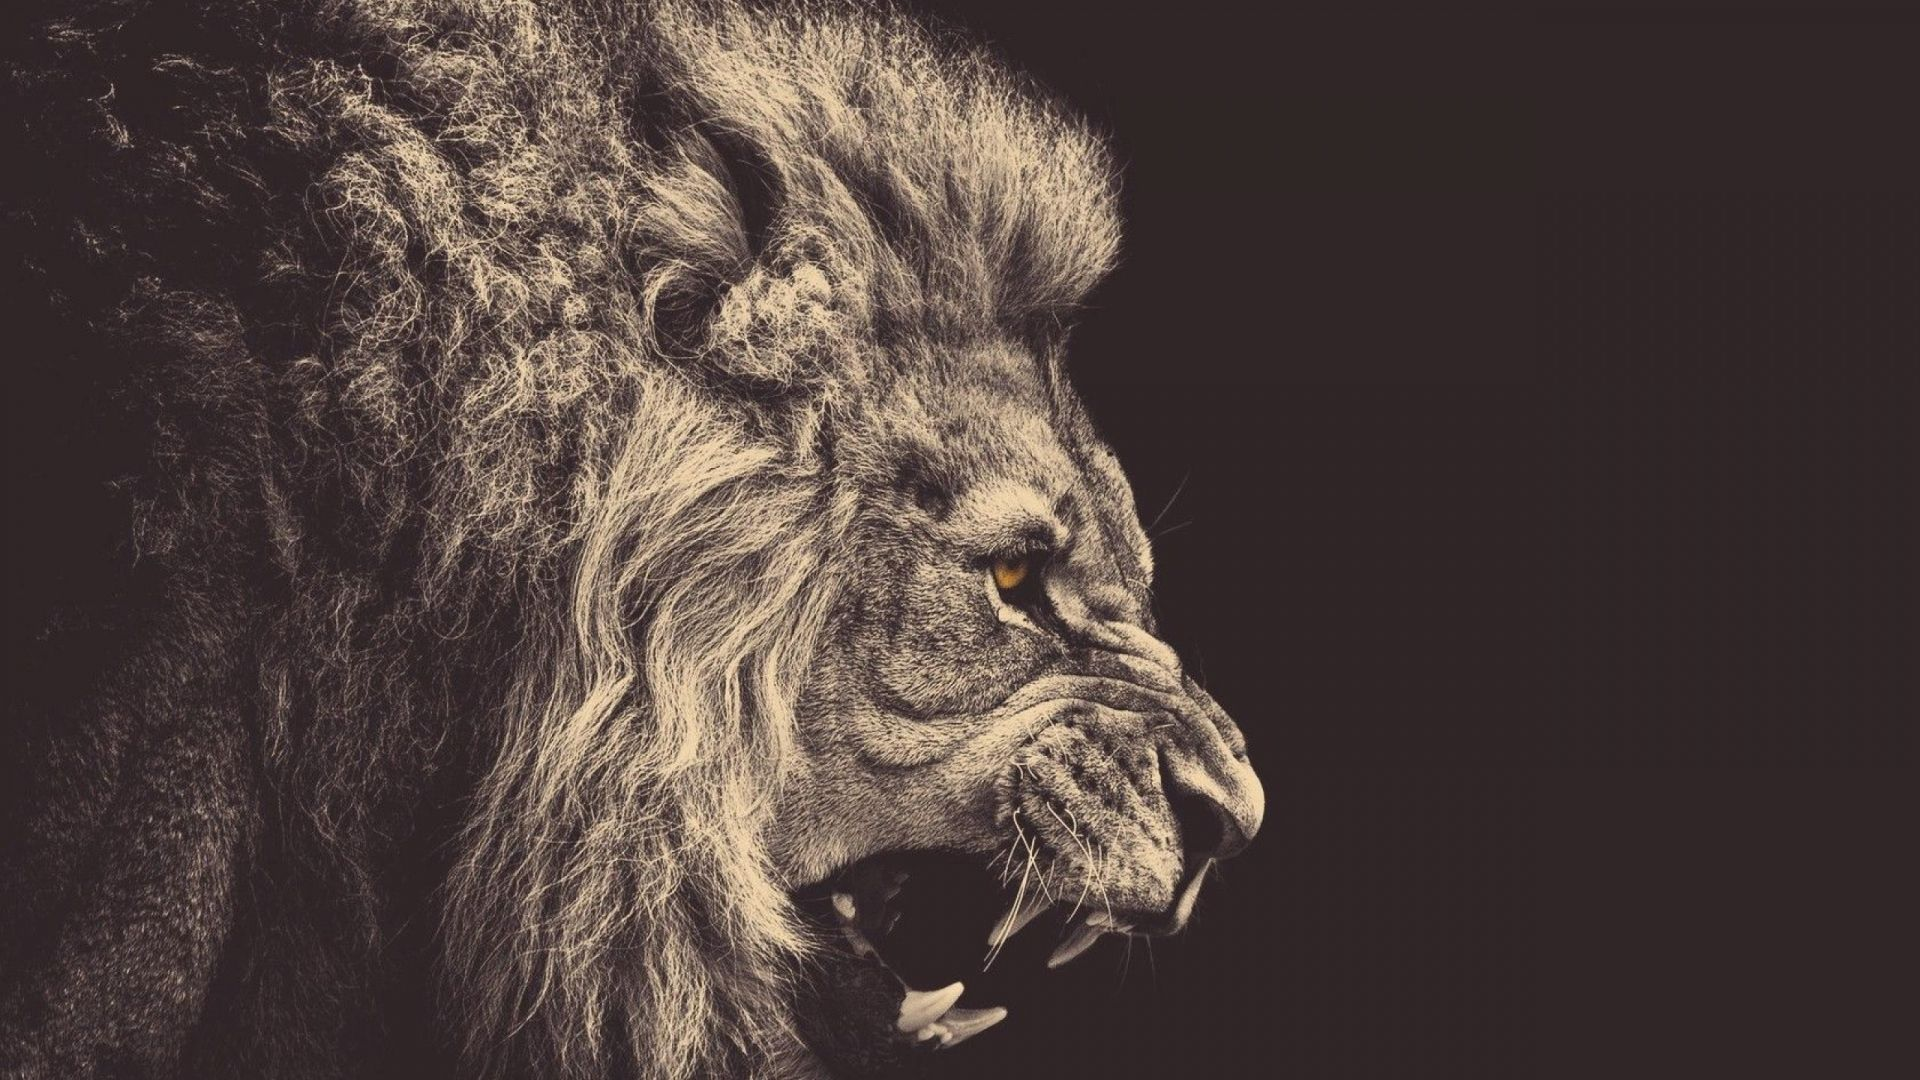 Full Hd 1080p Animals Wallpapers Desktop Backgrounds Hd Downloads Lion Pictures Lion Wallpaper Like A Lion